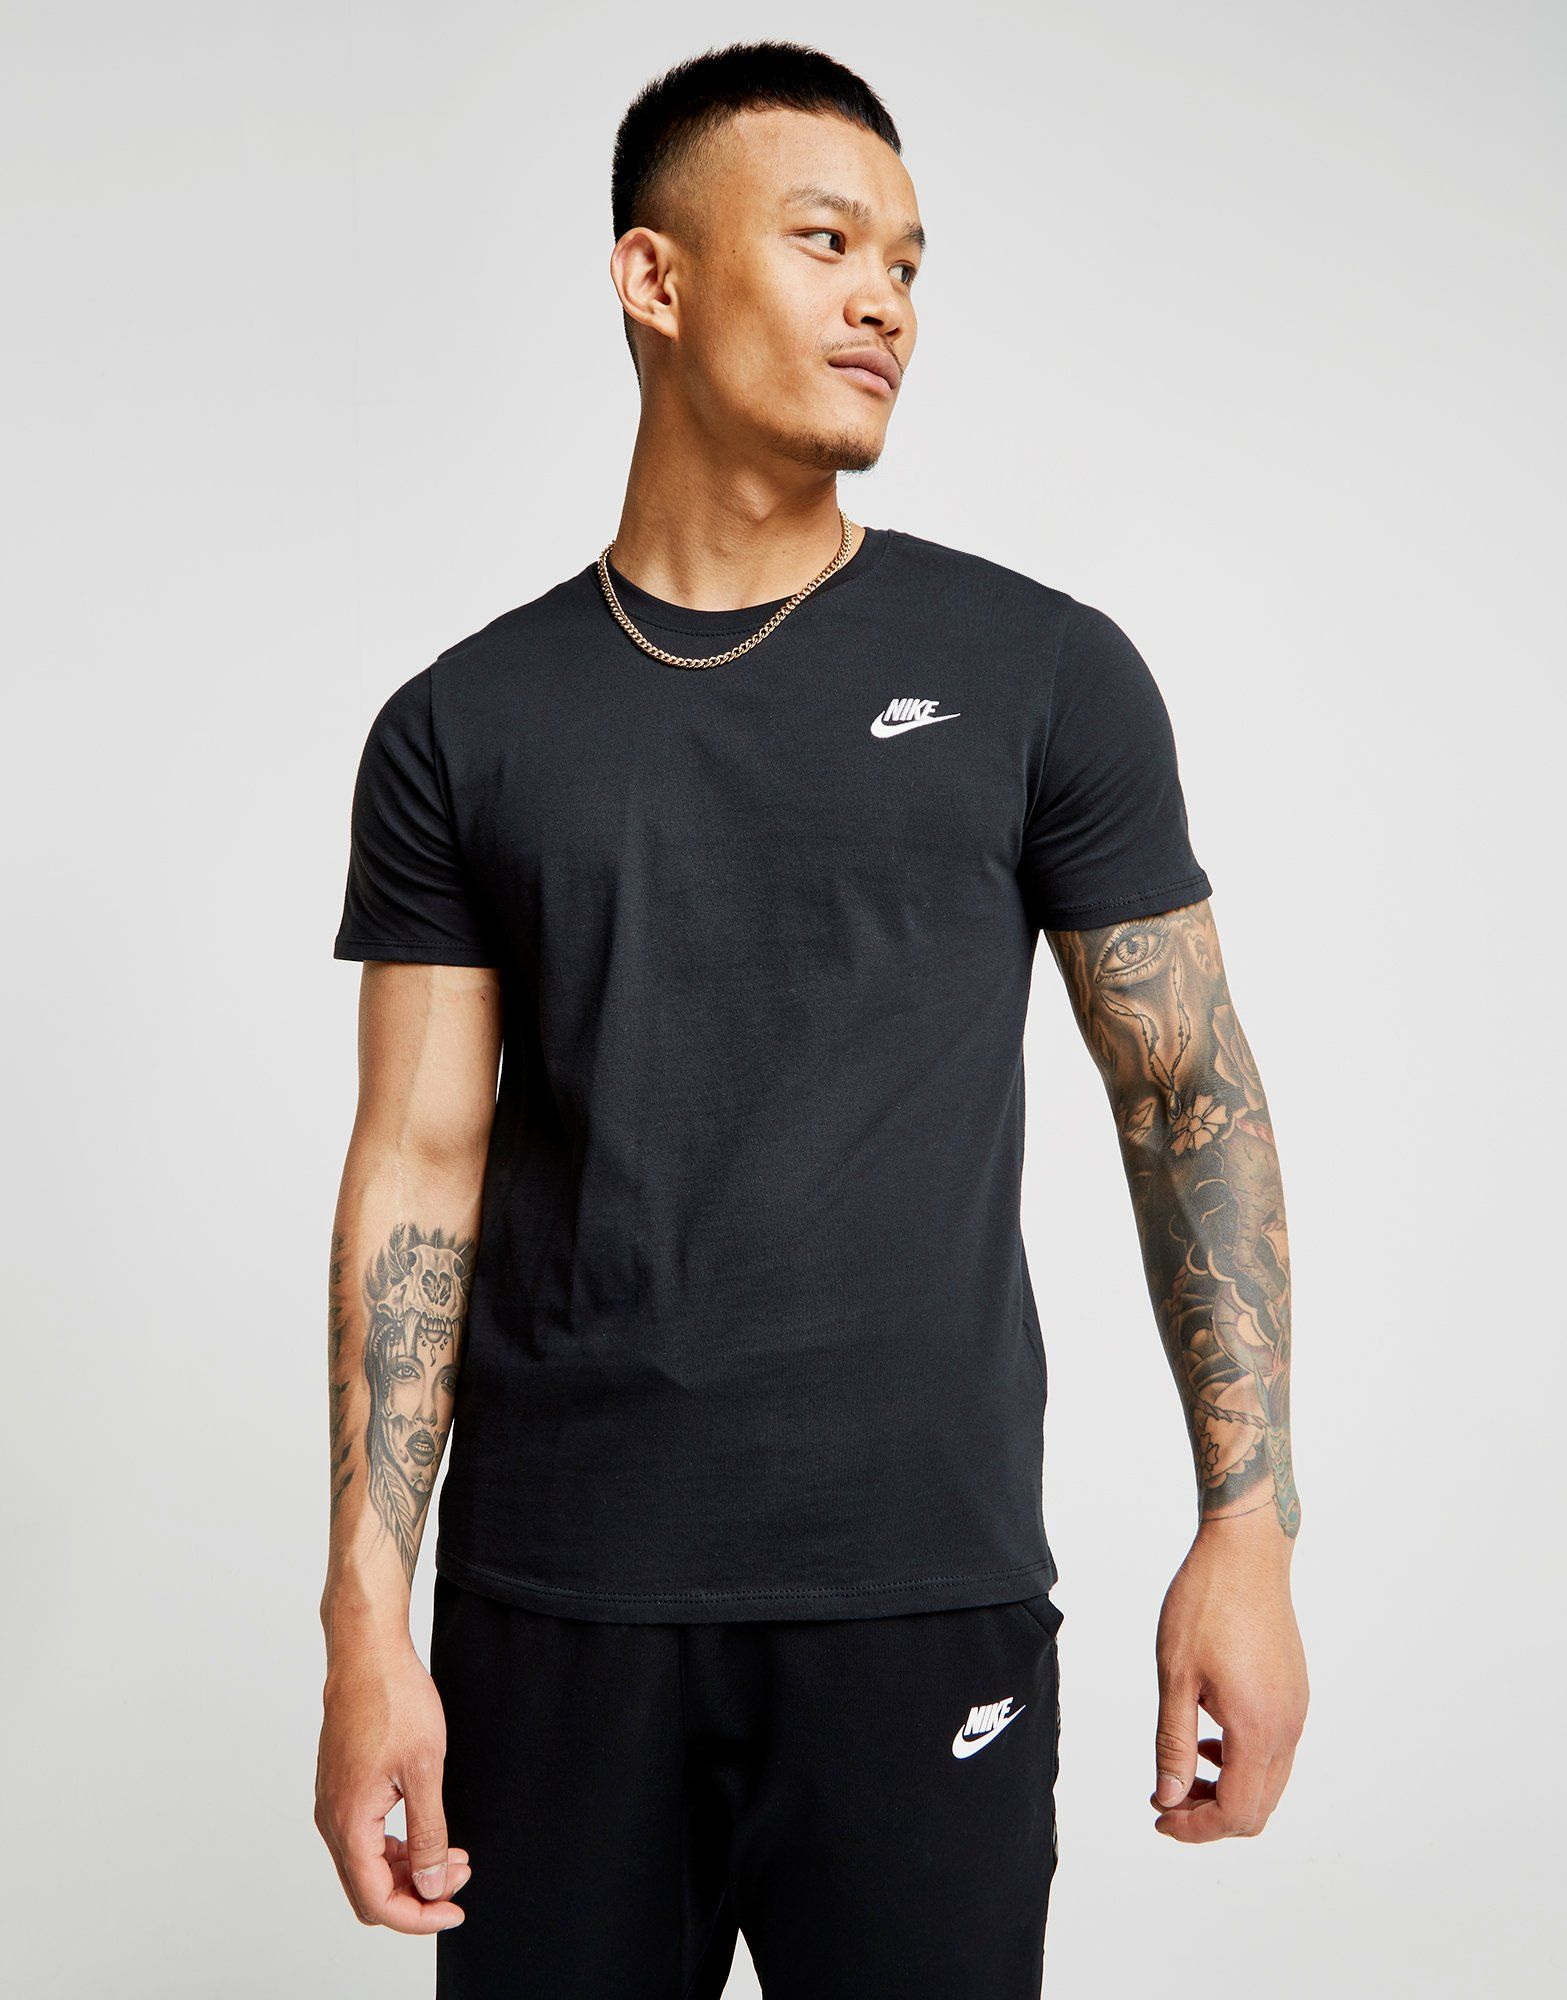 Black t shirt man - Nike Core T Shirt